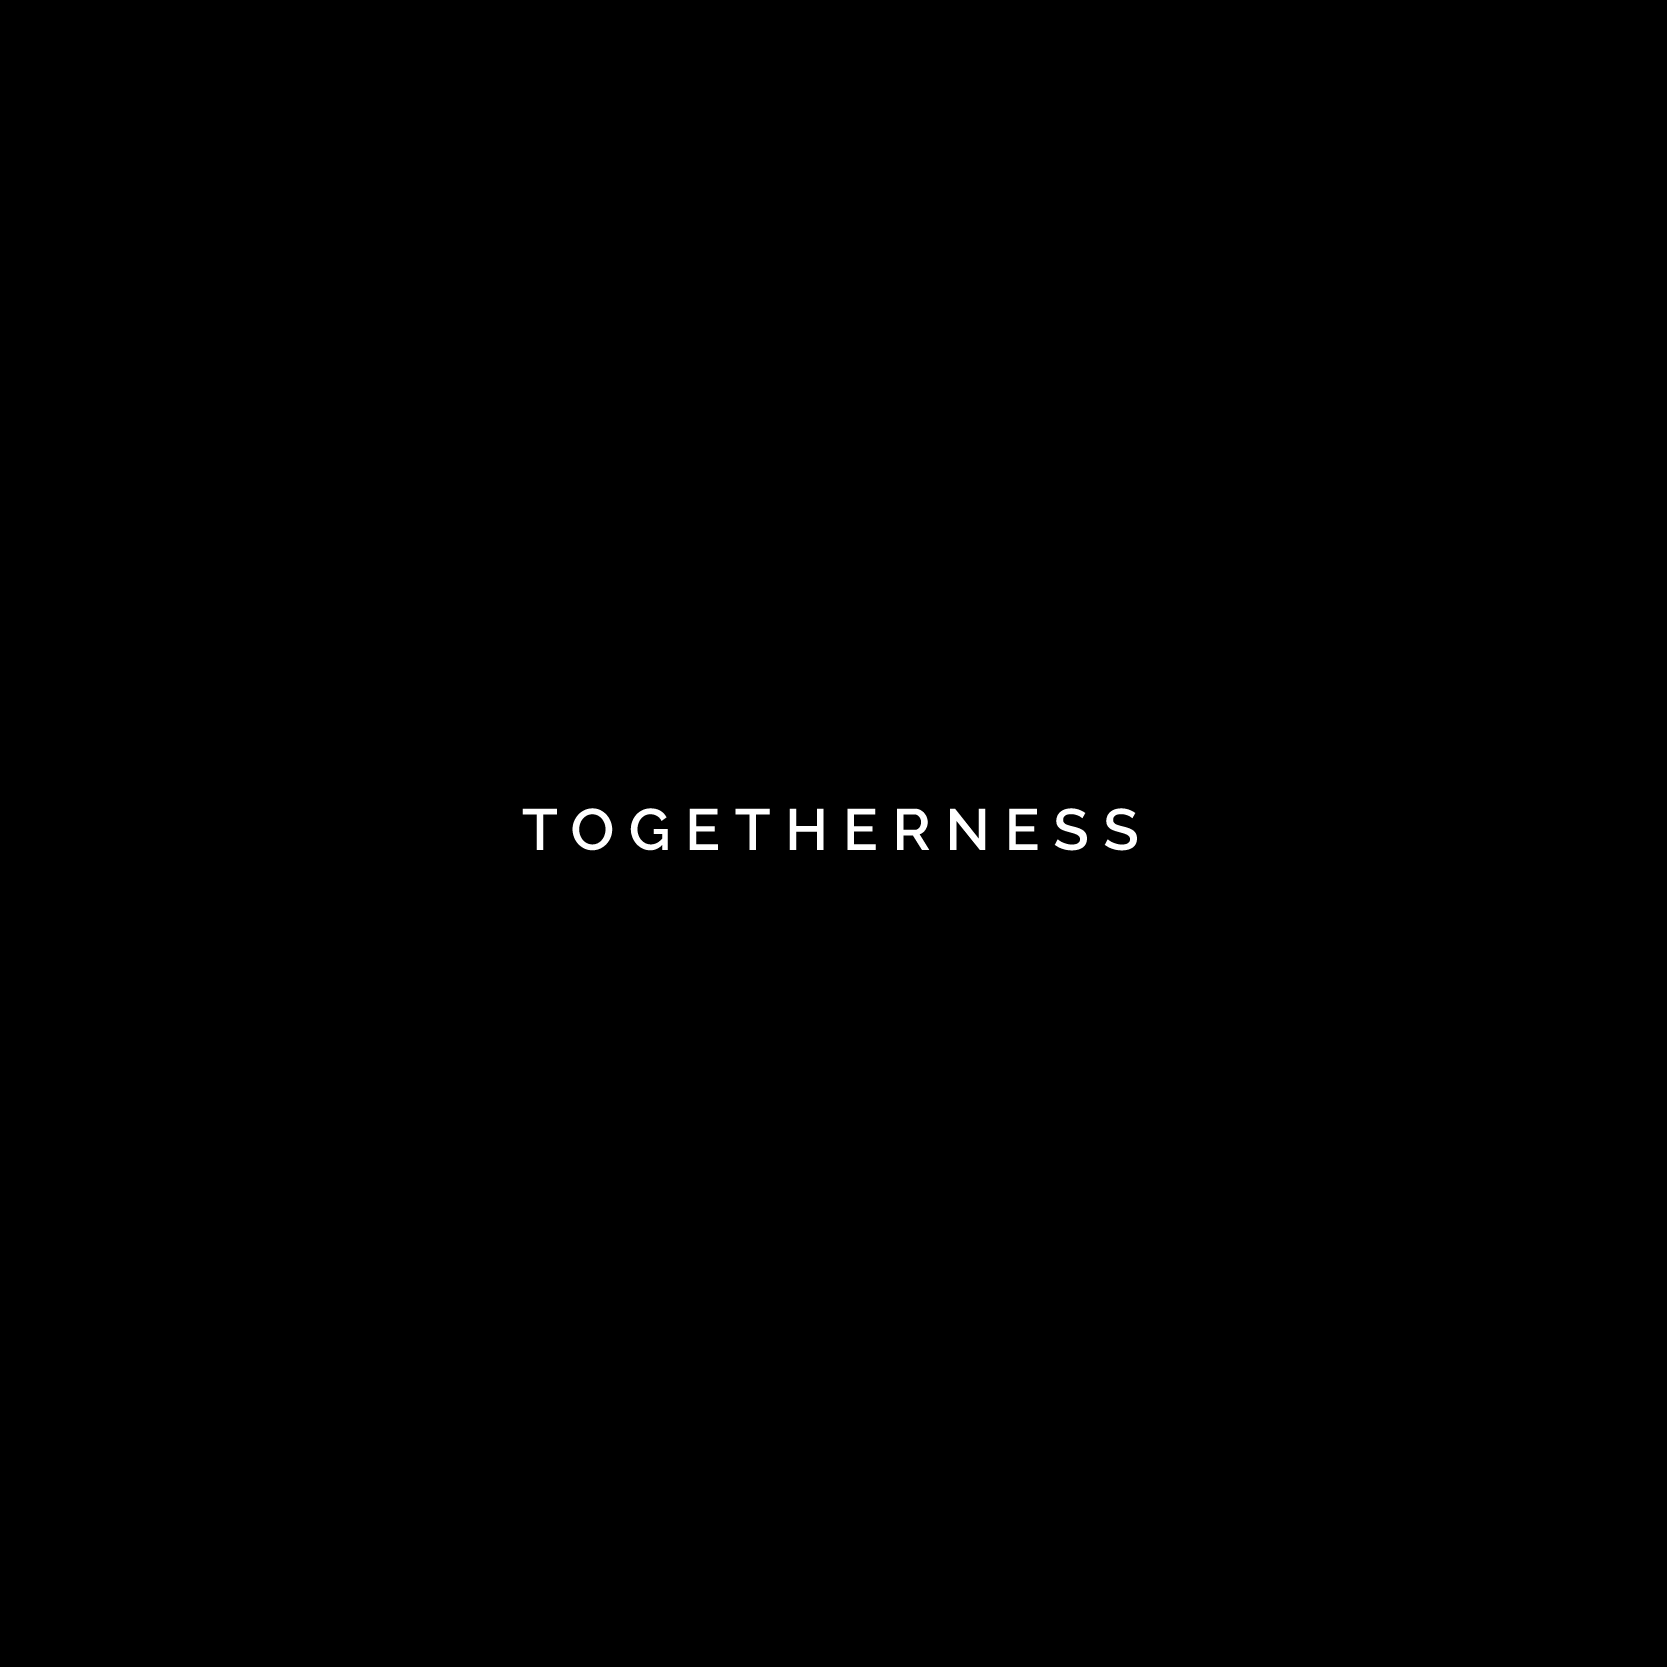 togetherness2-01